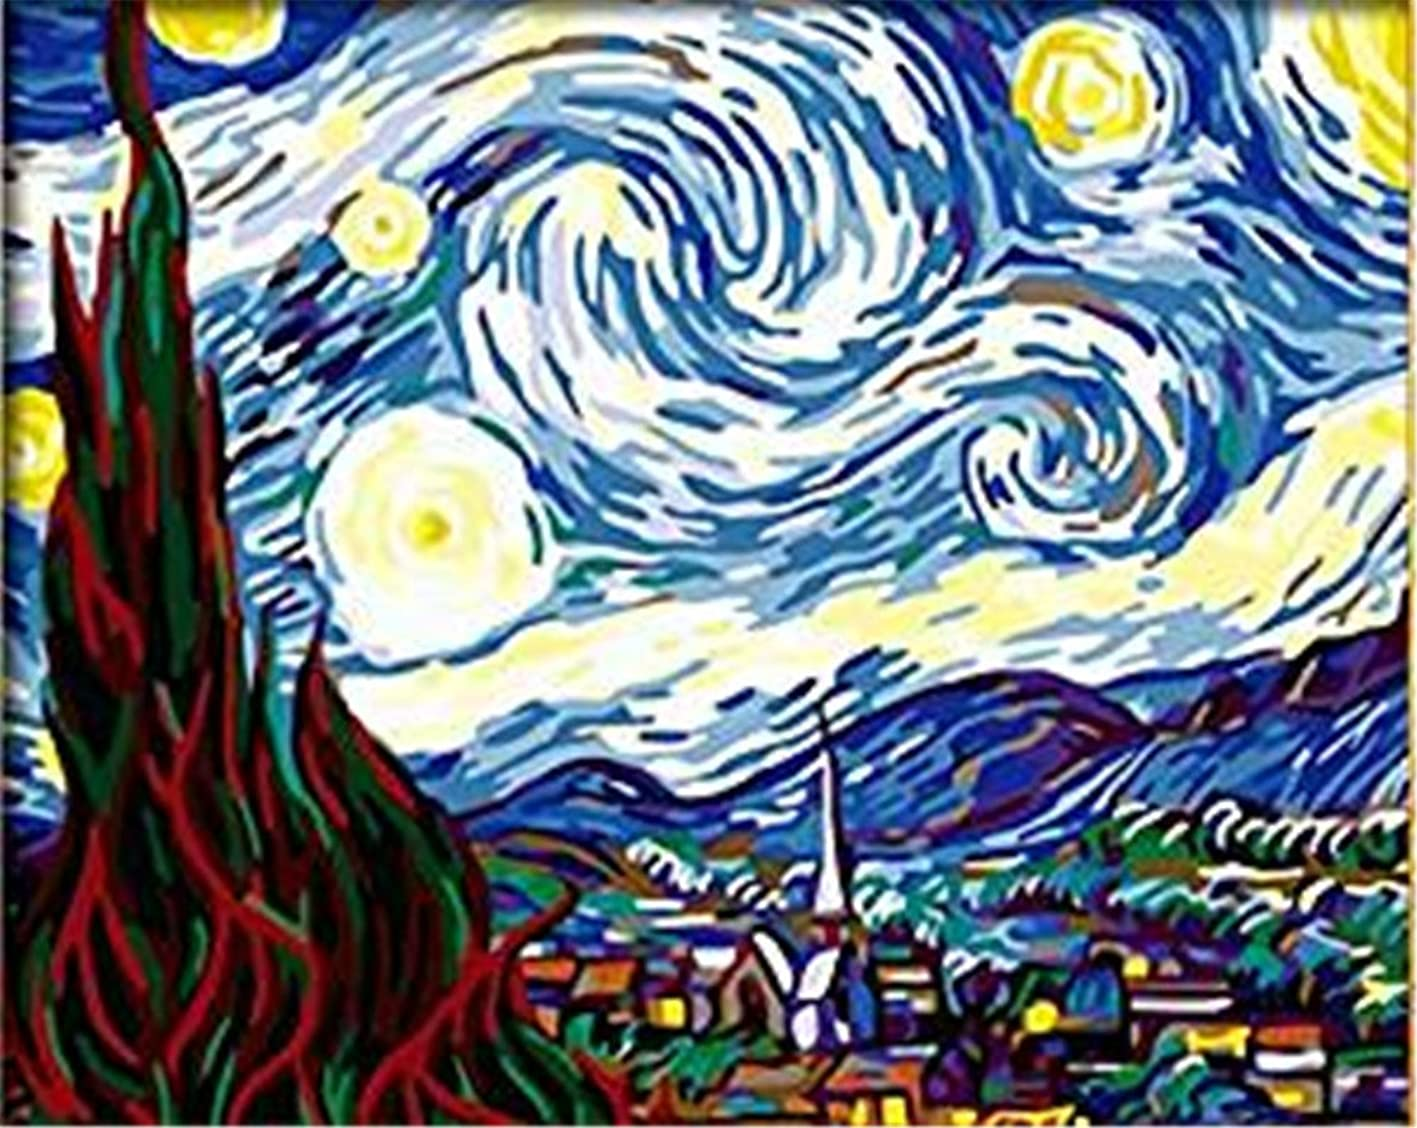 YEESAM Art New DIY Paint by Number Kits for Adults Kids Beginner - Worldwide Famous Oil Painting by Van Gogh 16x20 inch Linen Canvas - Stress Less Number Painting Gifts (with Frame, The Starry Night) kjemsksnpsa585